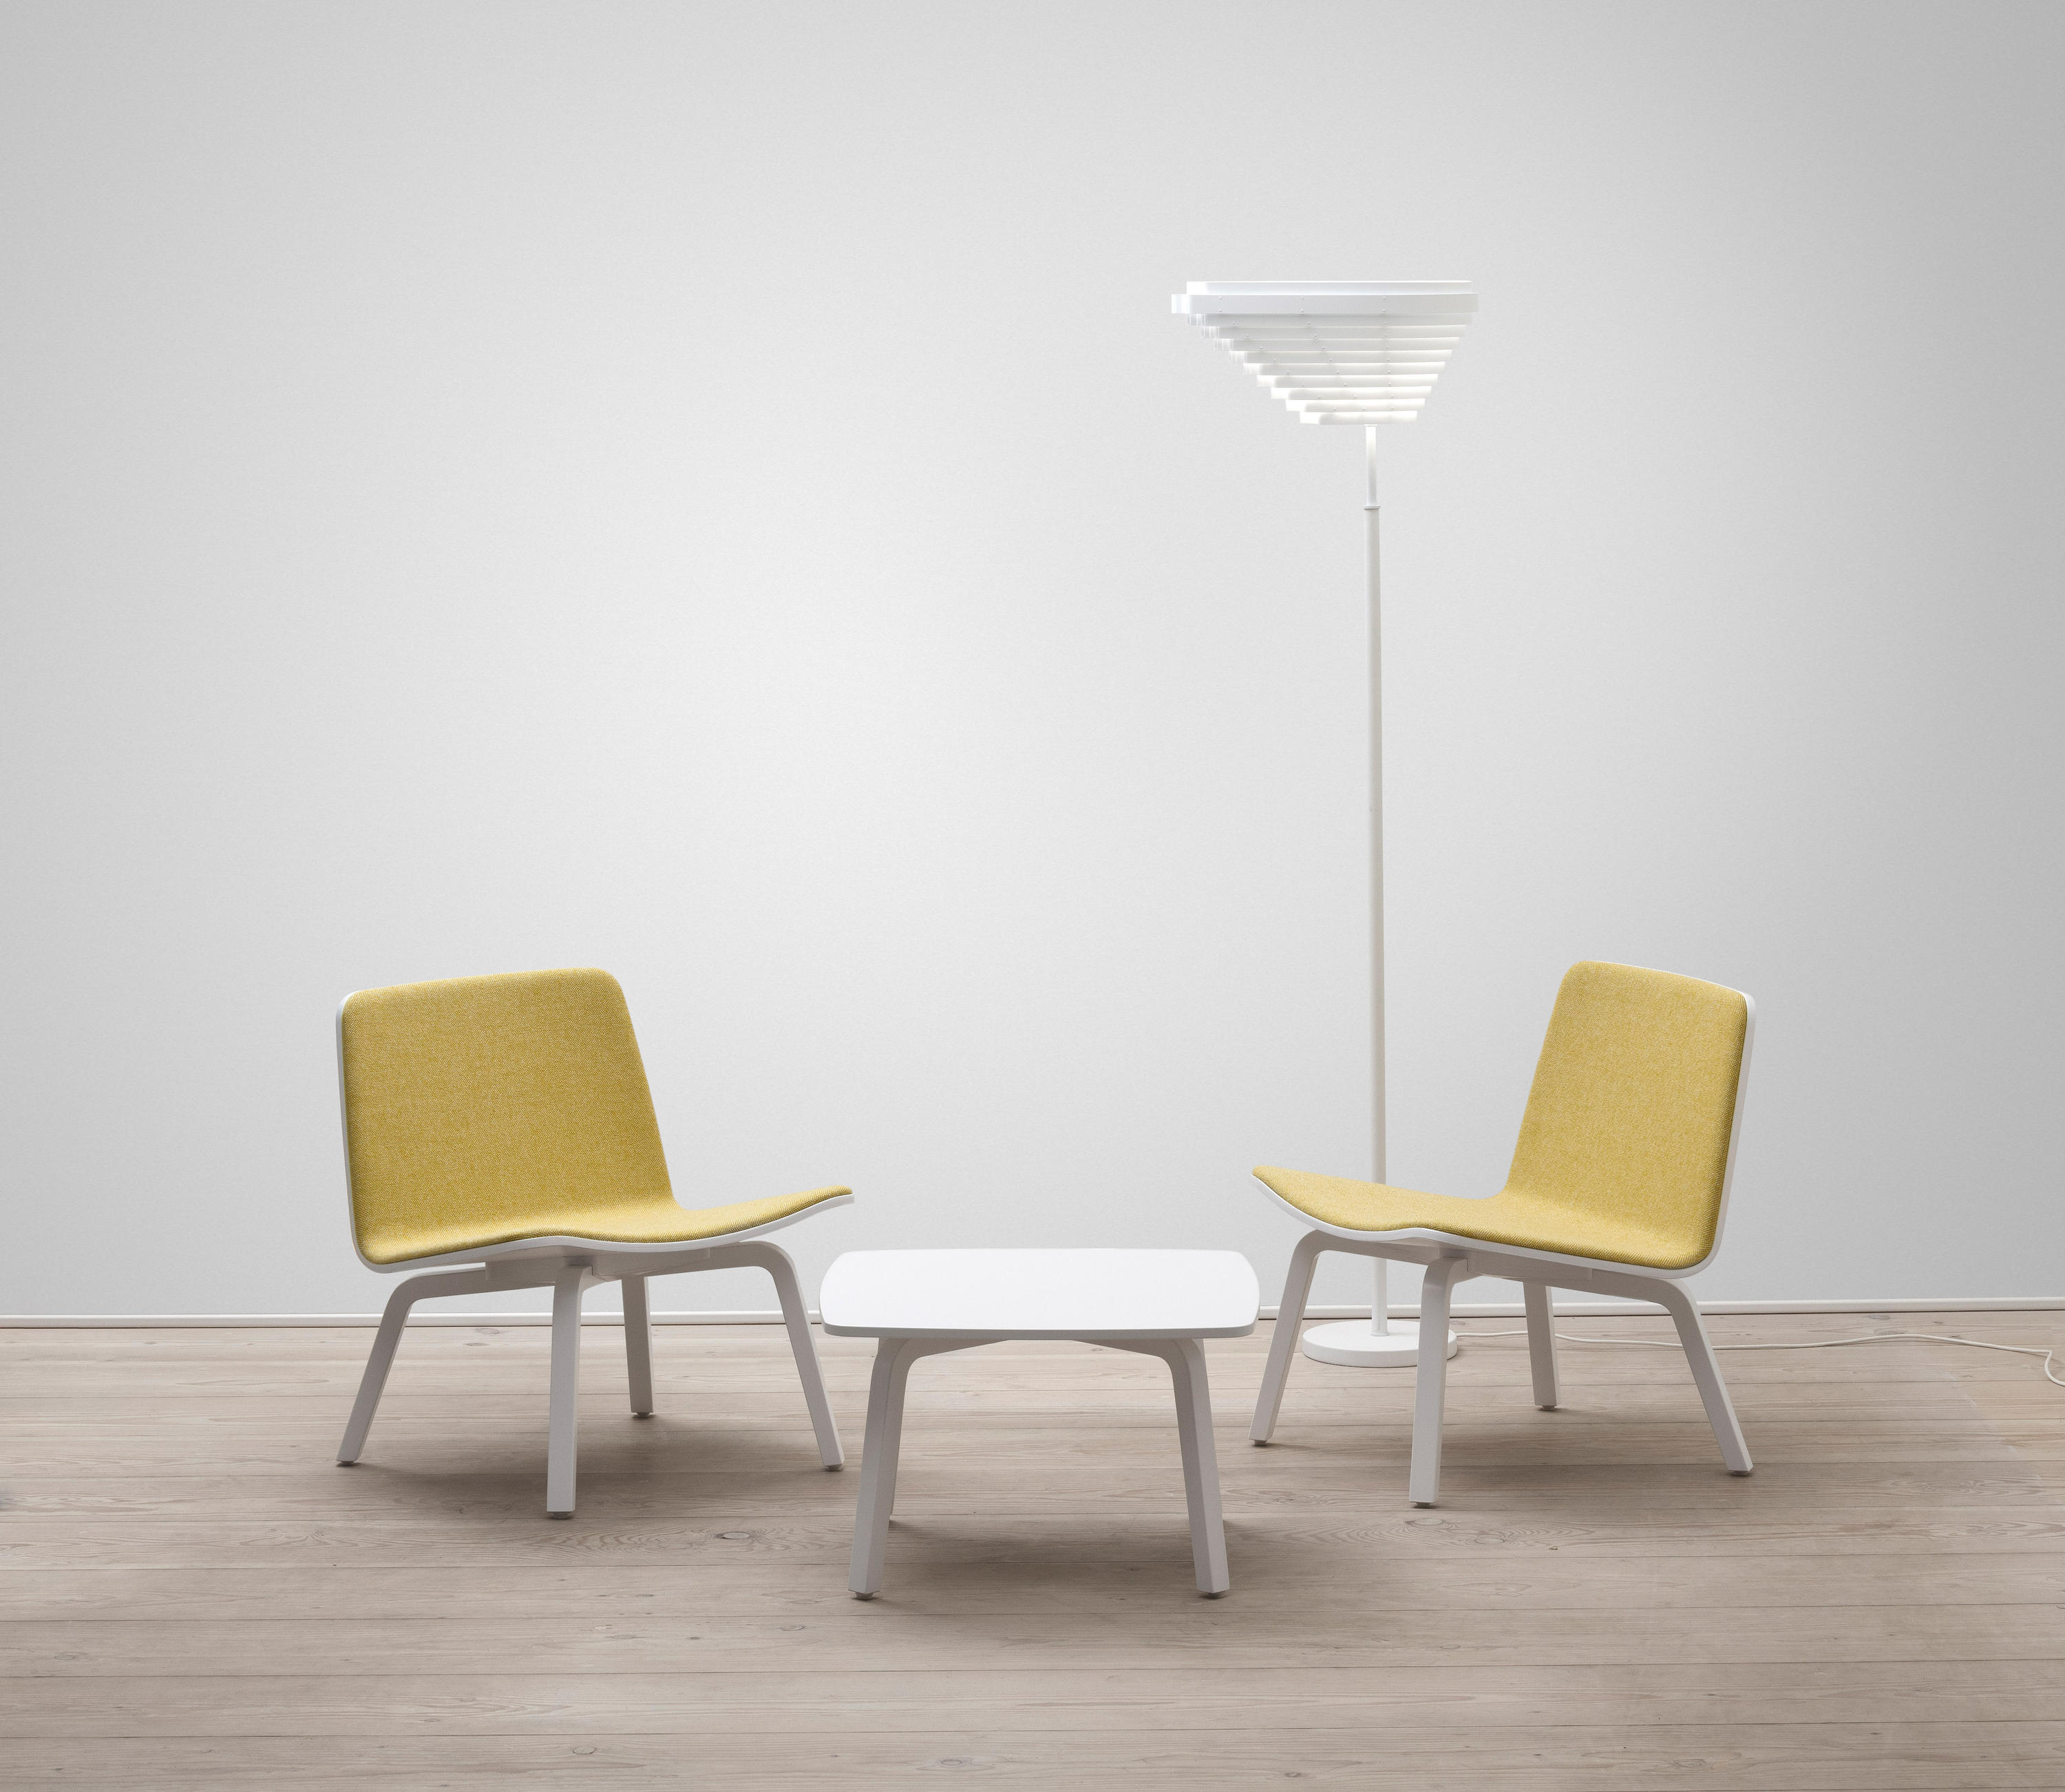 Hk 002 Lounge Chair Lounge Chairs From Artek Architonic